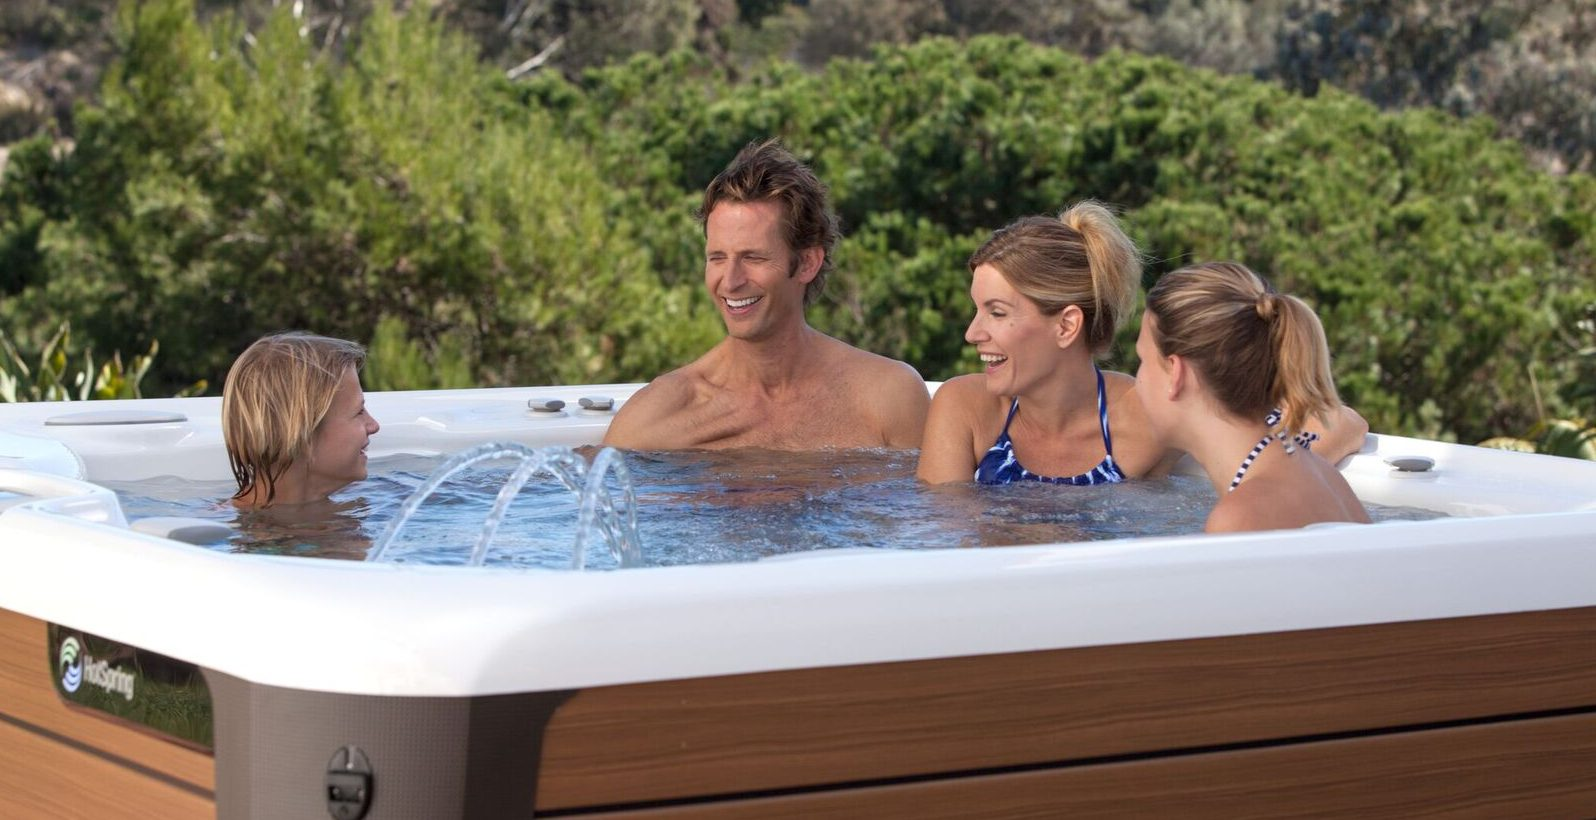 Your Guide to G-Rated Hot Tub Games